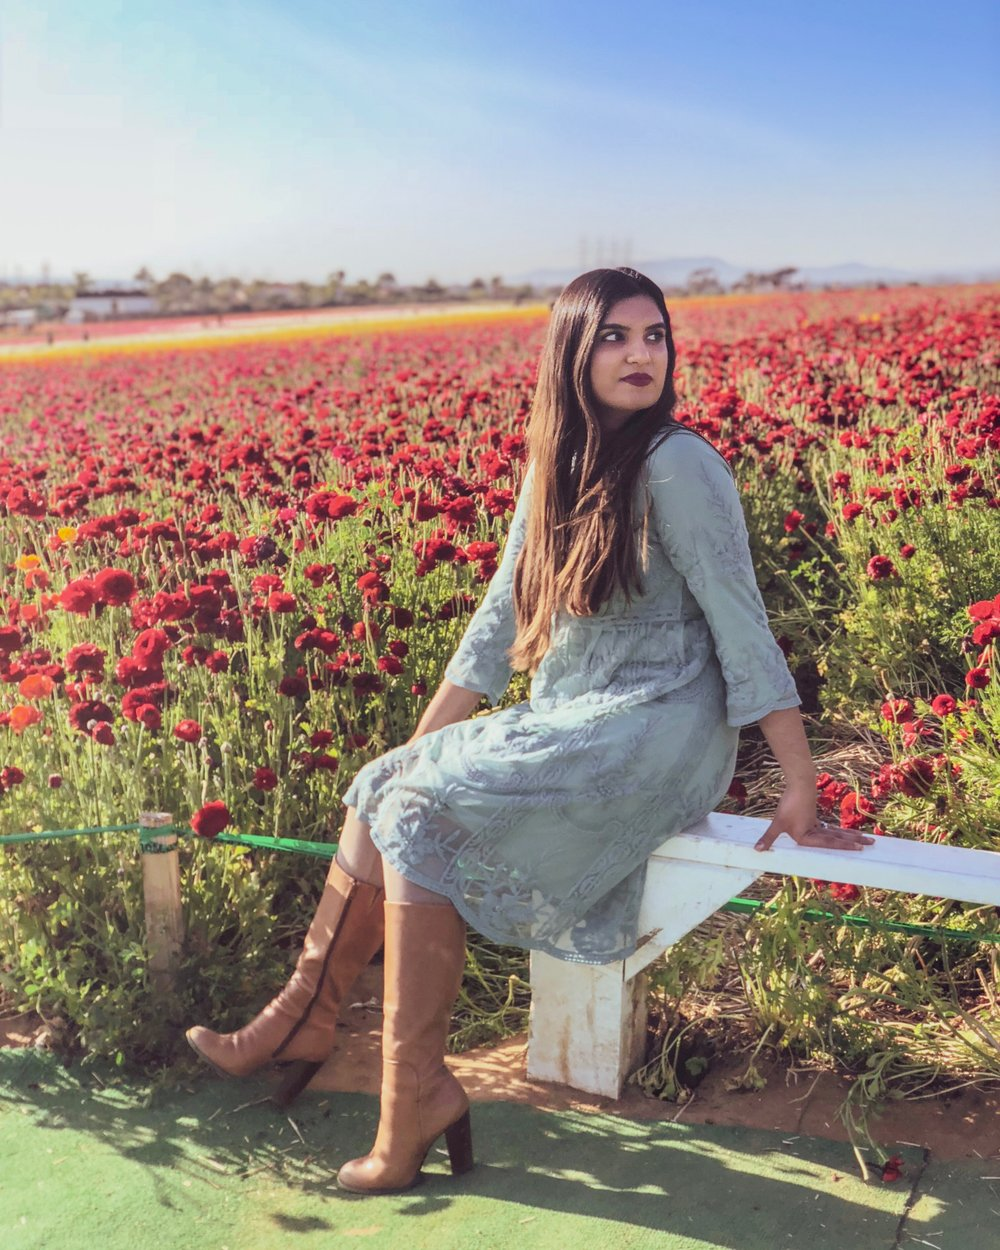 Farhea Mahmood-Siddiqui is a 20-something Los Angeles born Financial Analyst, in the midst of a never-ending love affair with world travel. When she's not staring at spreadsheets she's outside exploring the world.